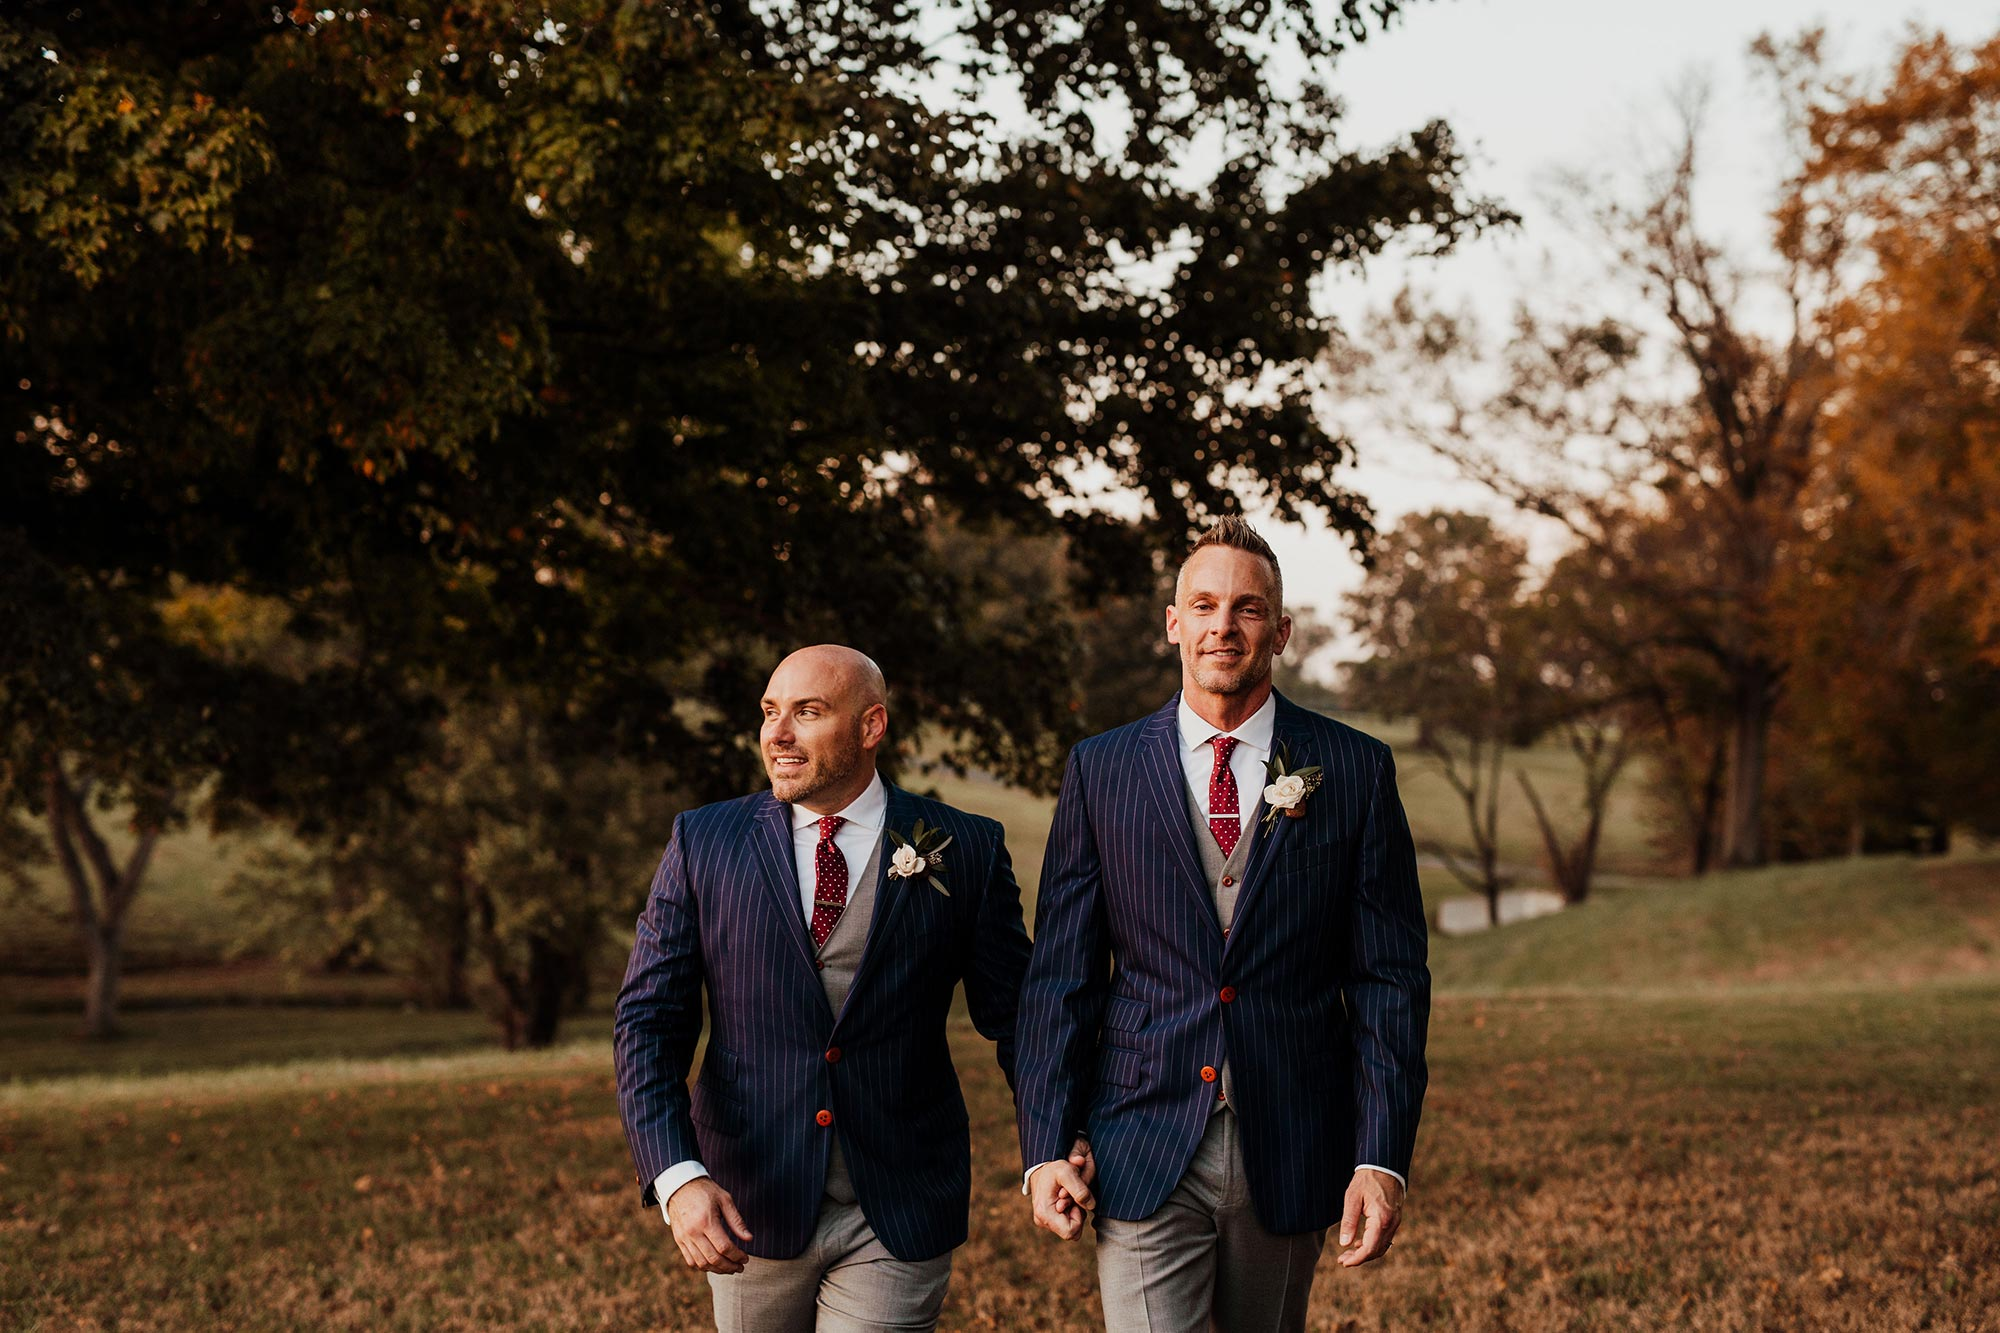 LGBTQ Louisville Kentucky Wedding at Hermitage Farm Crystal Ludwick Photo grooms walking holding hands